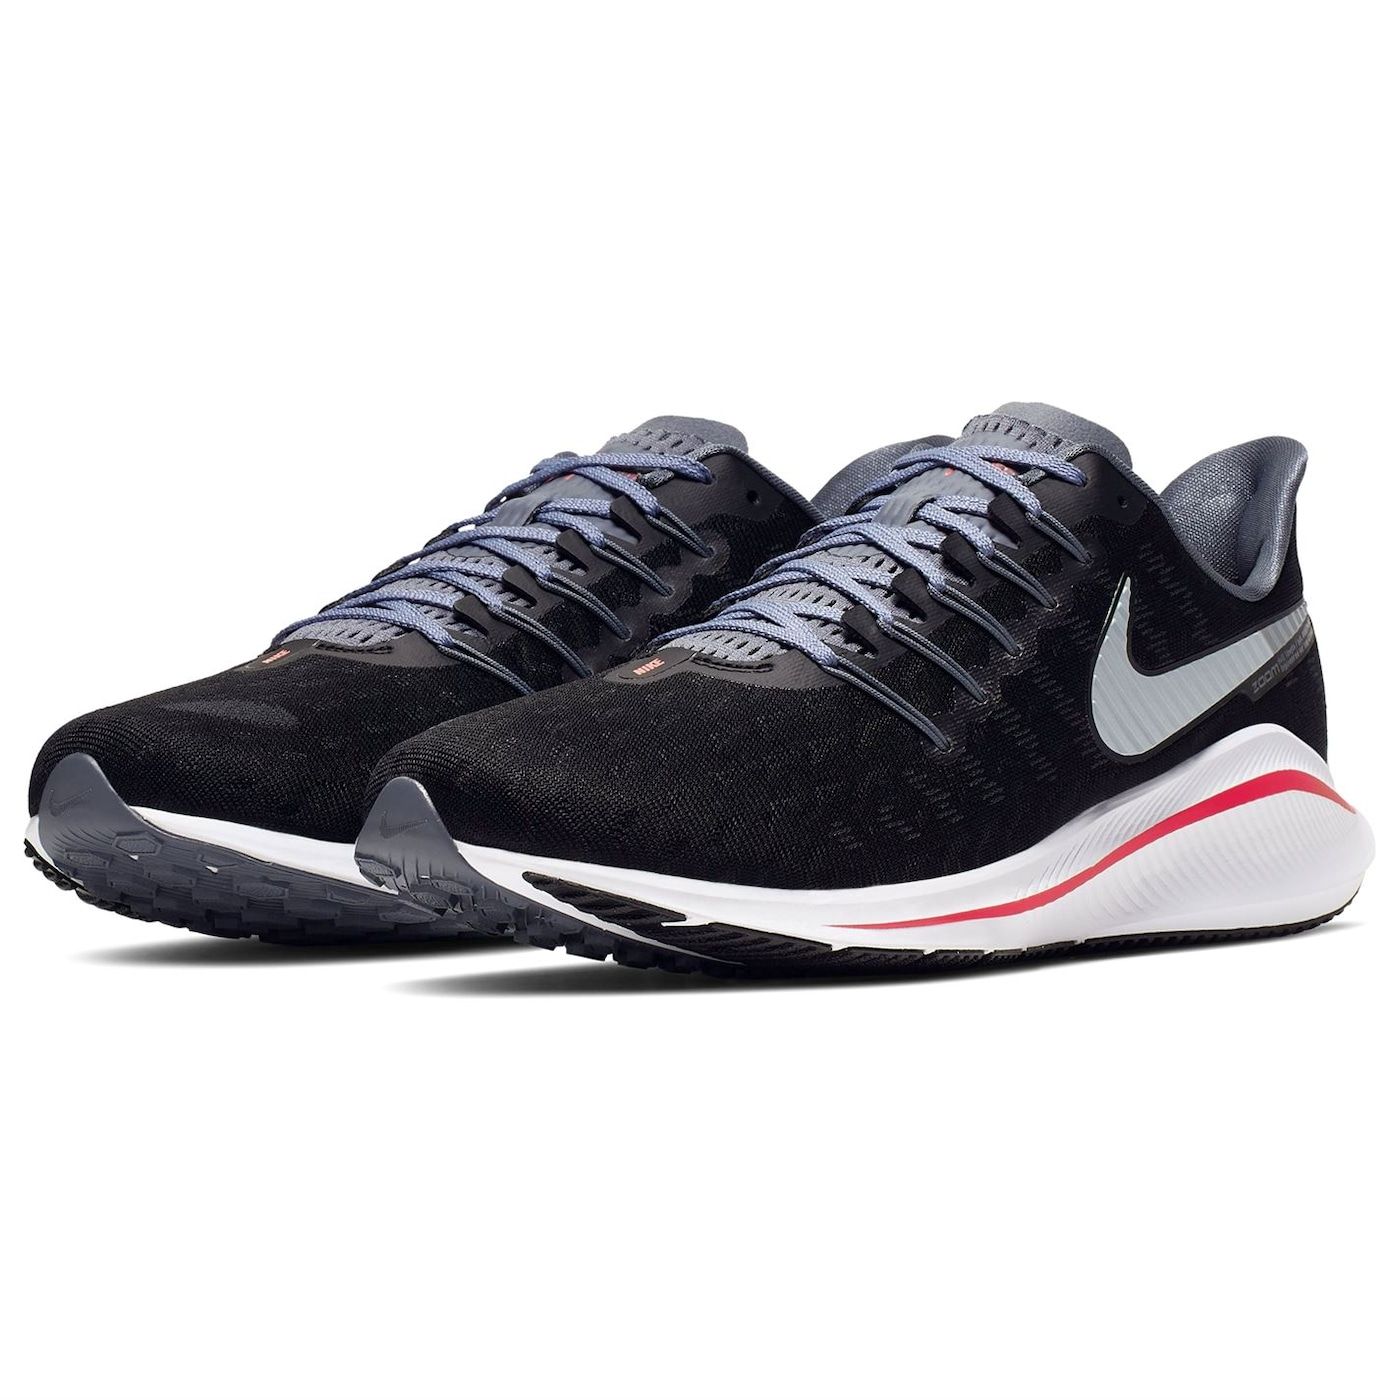 Nike Air Zoom Vomero 14 Mens Running Shoes